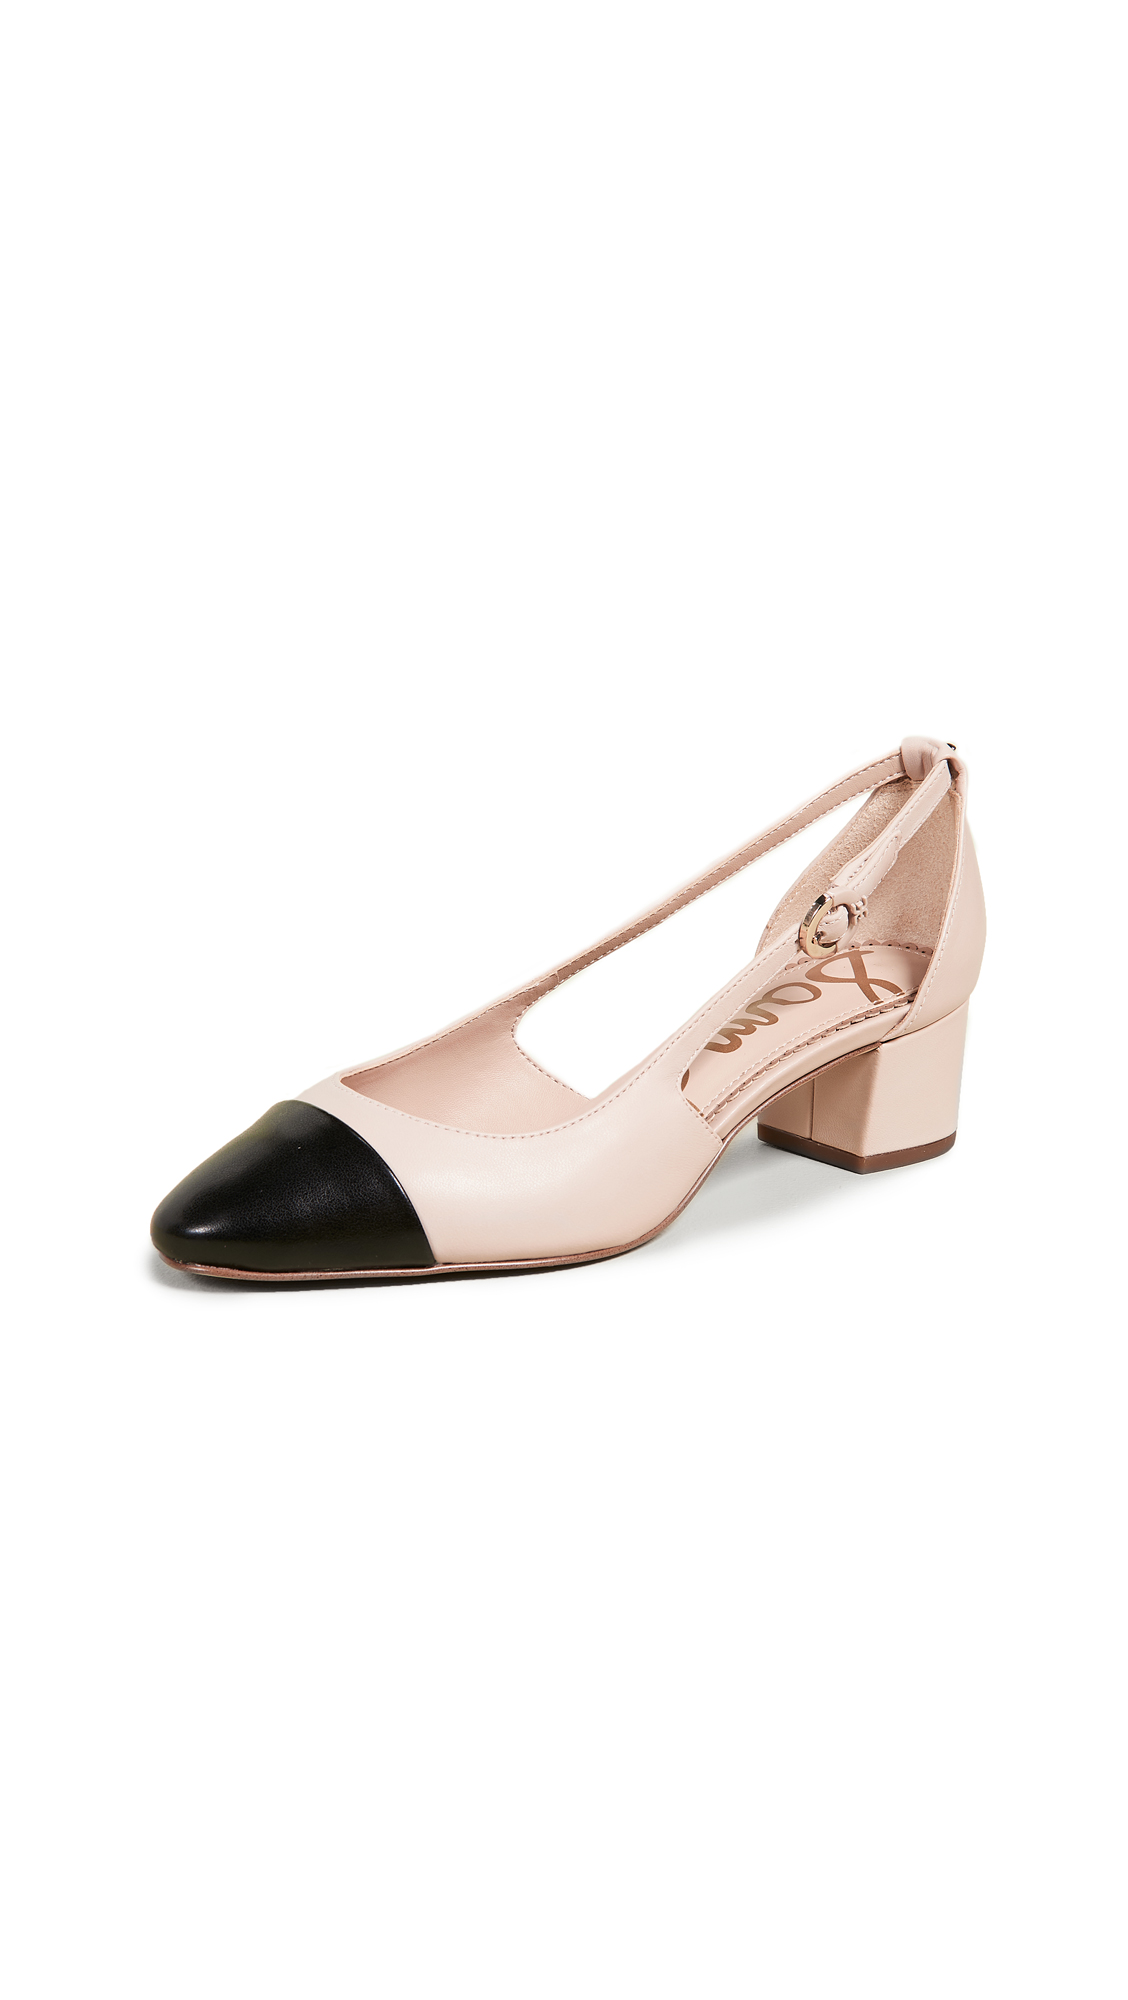 Sam Edelman Leah Pumps - 50% Off Sale